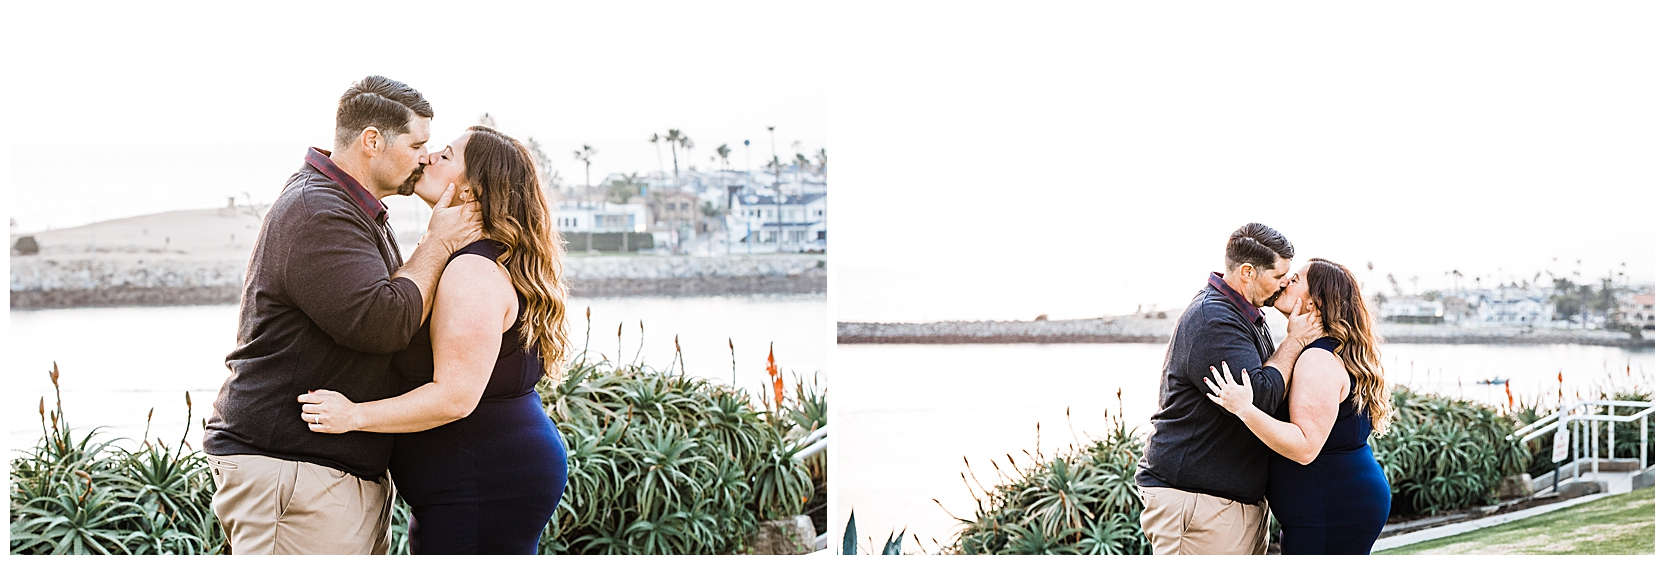 jessicafredericks_huntingtonbeach_proposal_sunset_engagement_0029.jpg